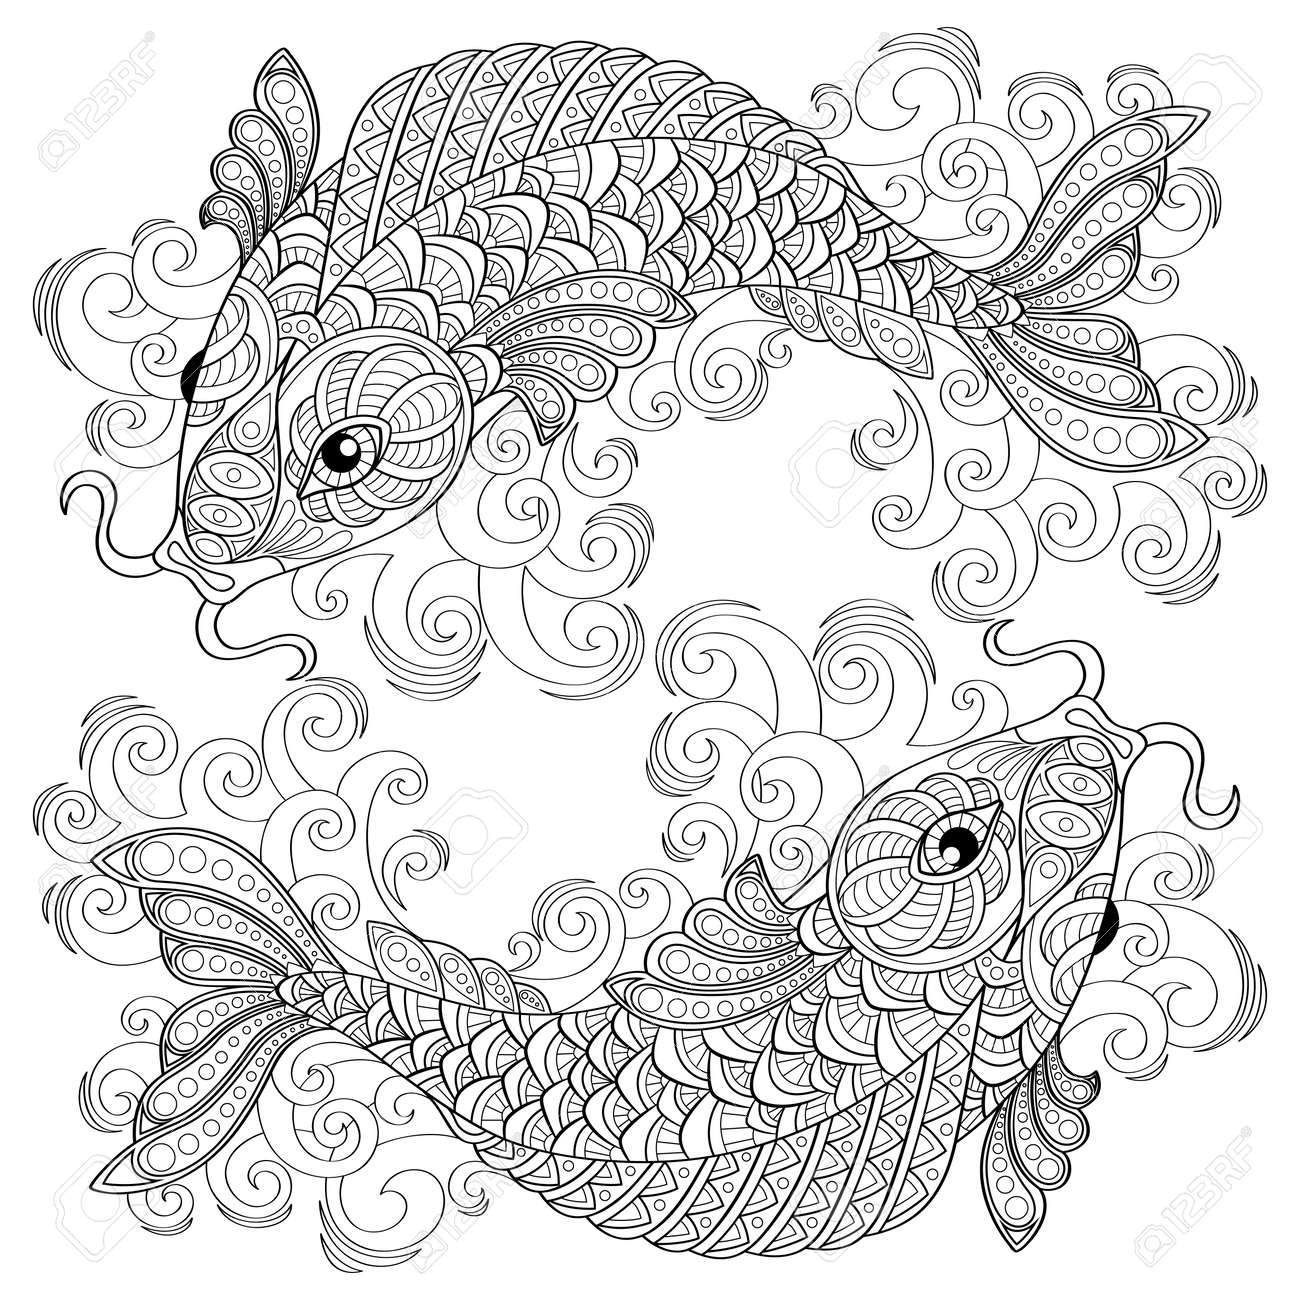 3103 koi fish stock vector illustration and royalty free koi fish chinese carps pisces adult antistress coloring page black and white biocorpaavc Images